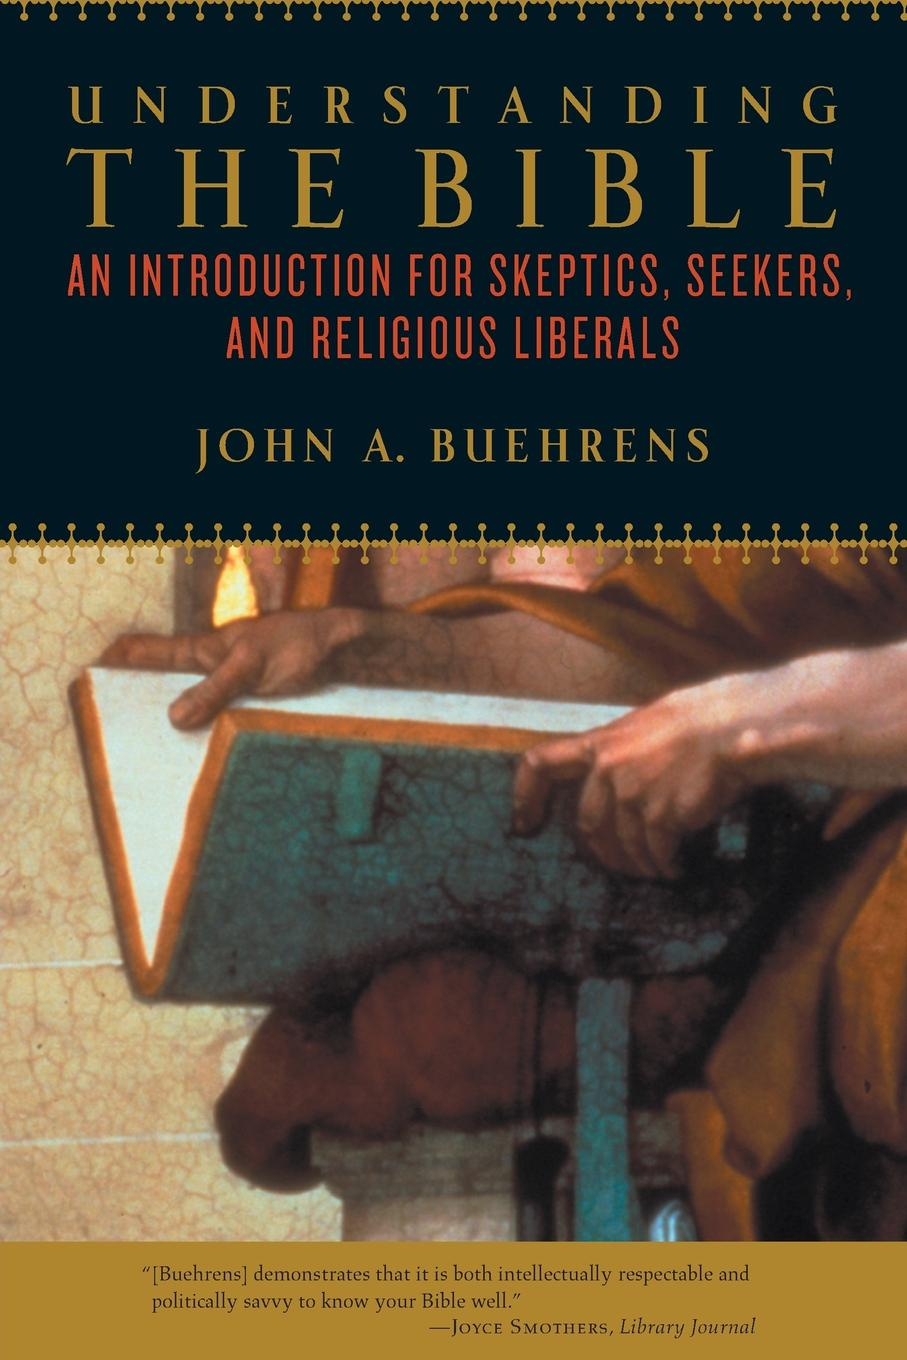 John Beuhrens Understanding the Bible. An Introduction for Skeptics, Seekers, and Religious Liberals